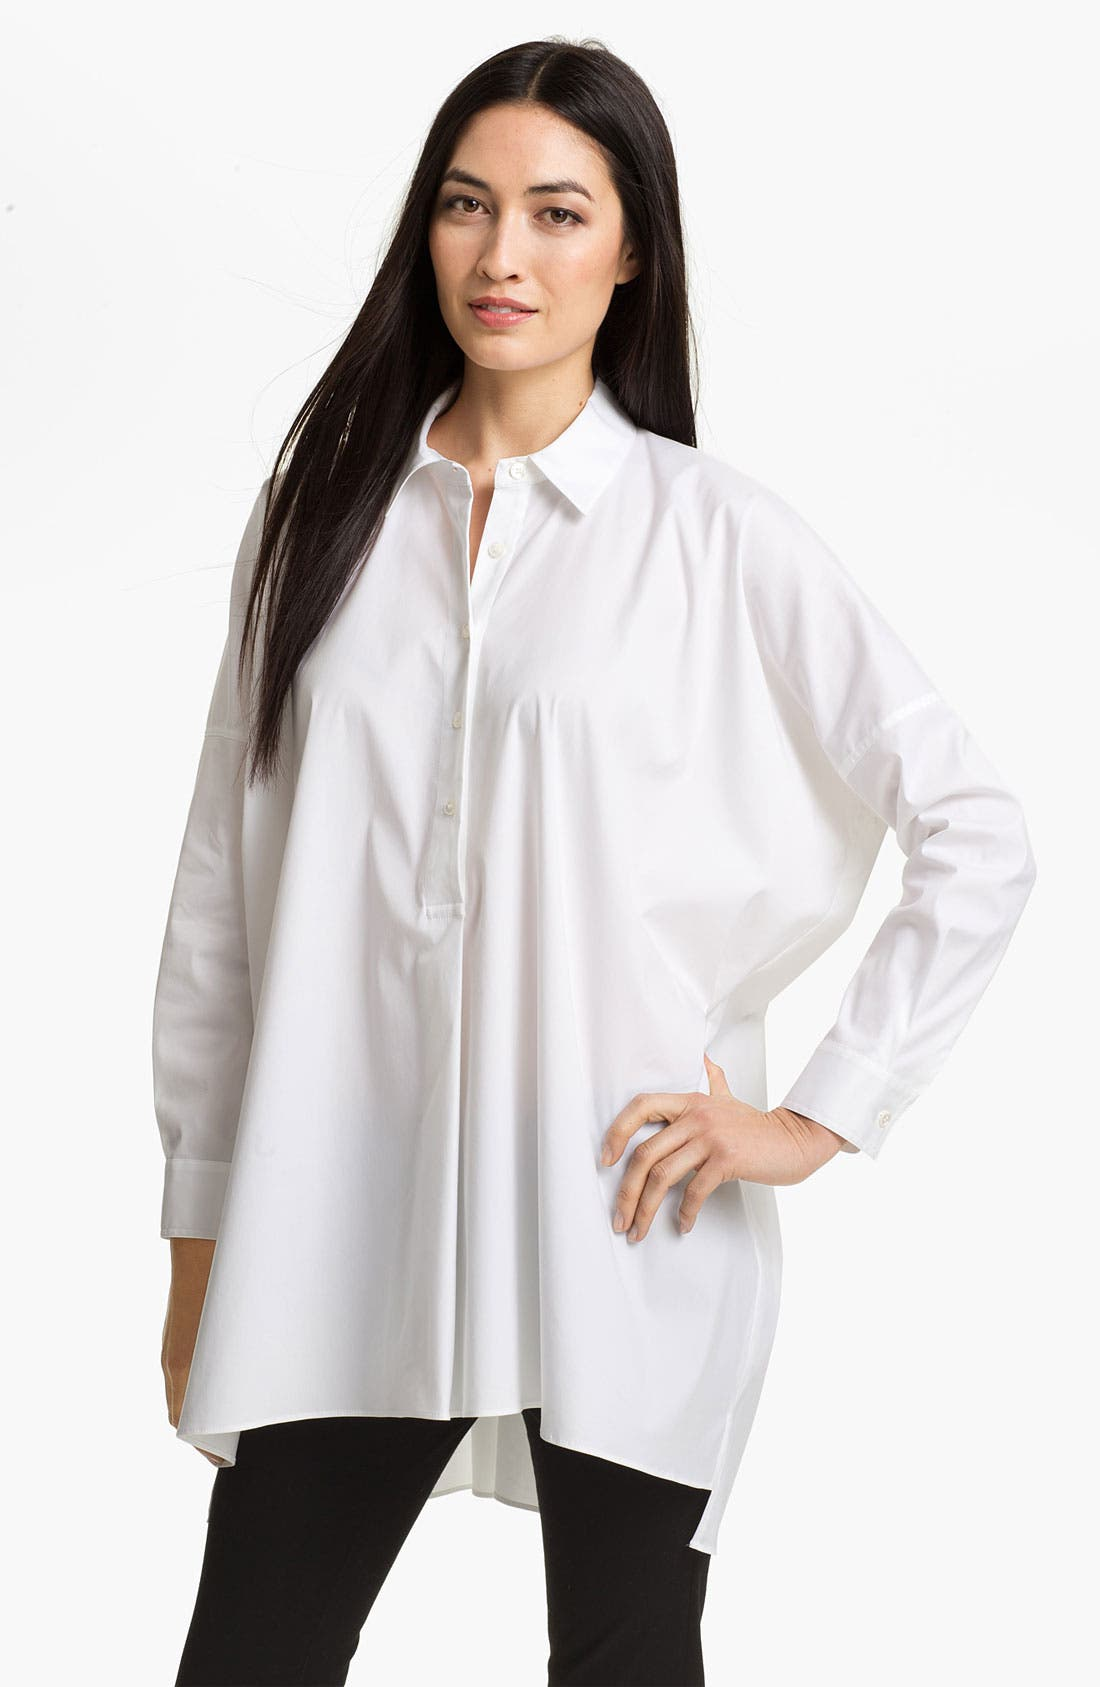 Alternate Image 1 Selected - Lafayette 148 New York 'Nylah' Blouse (Online Exclusive)